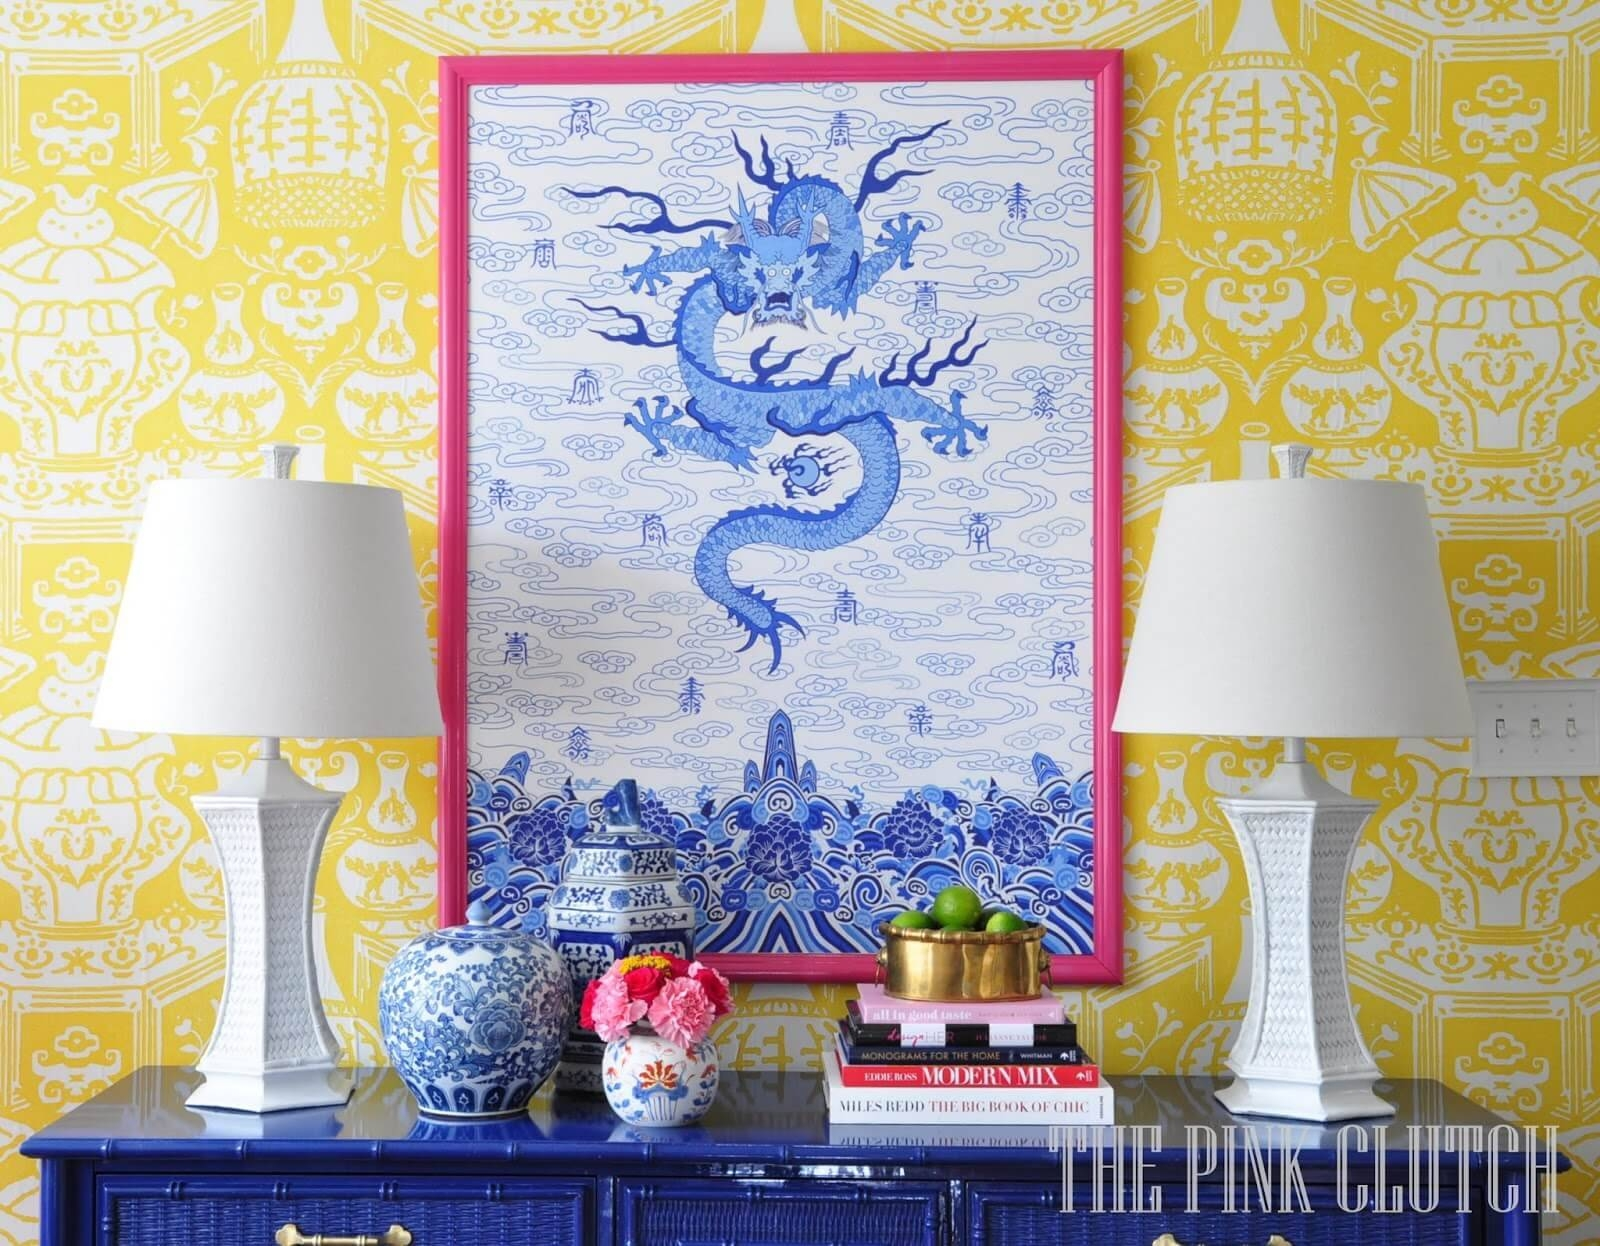 Chinoiserie Decorating Tips | Decoratorsbest Blog Intended For 2017 Chinoiserie Wall Art (View 12 of 30)